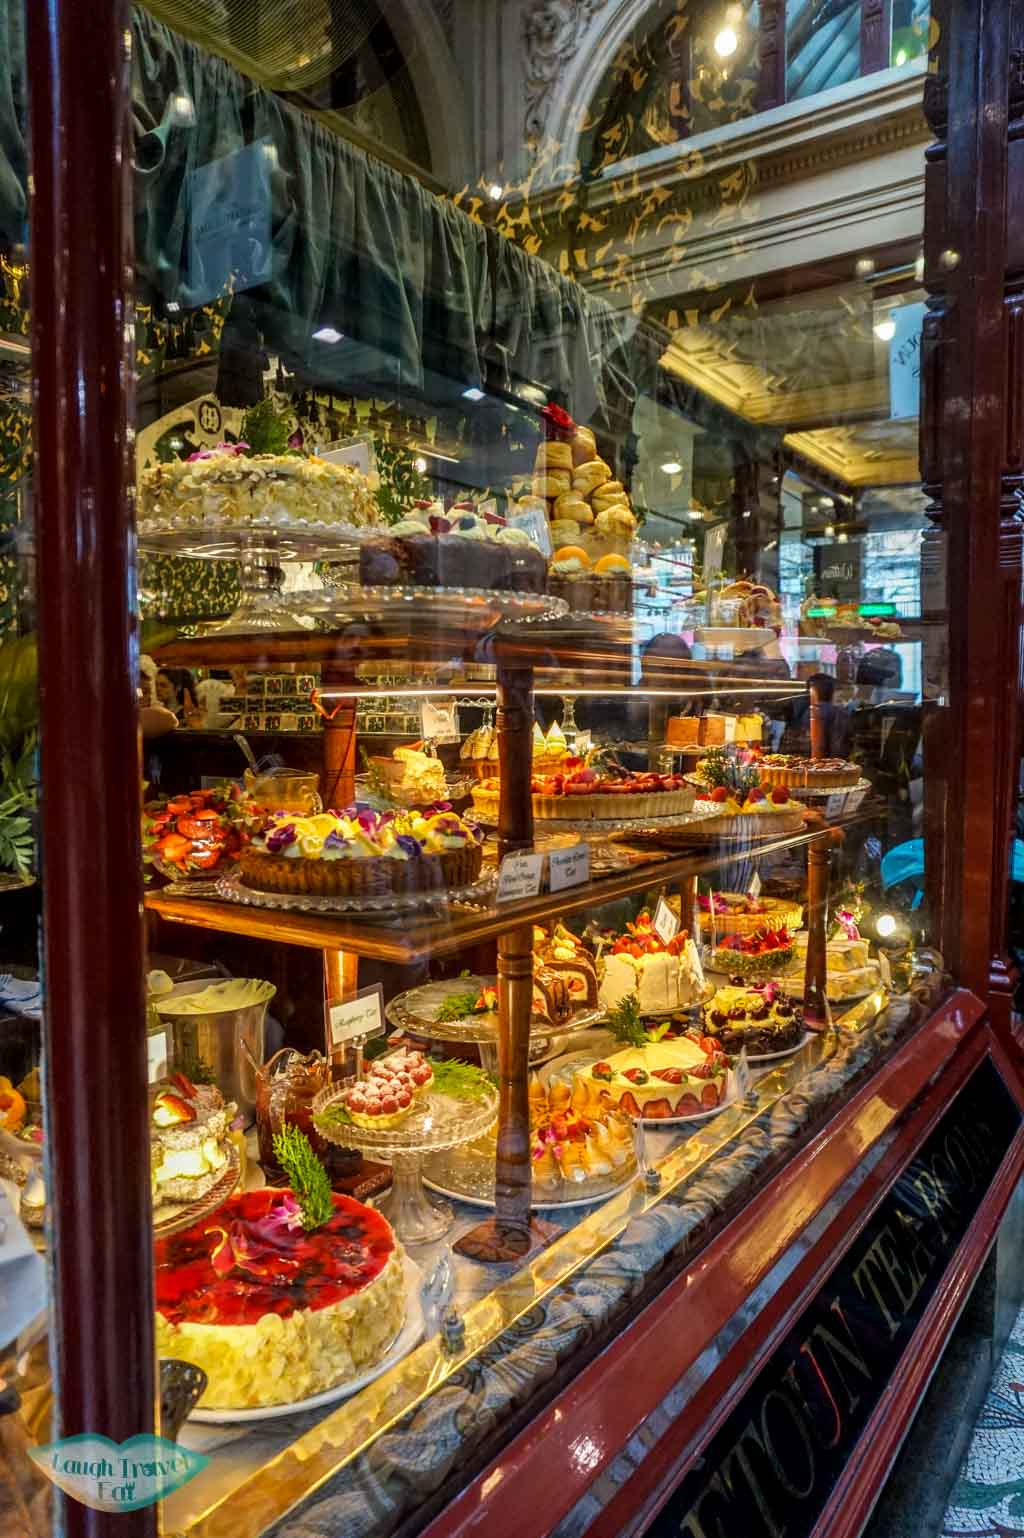 Cake display, Hopetoun Tea Rooms, Royal Arcade, Melbourne, Australia